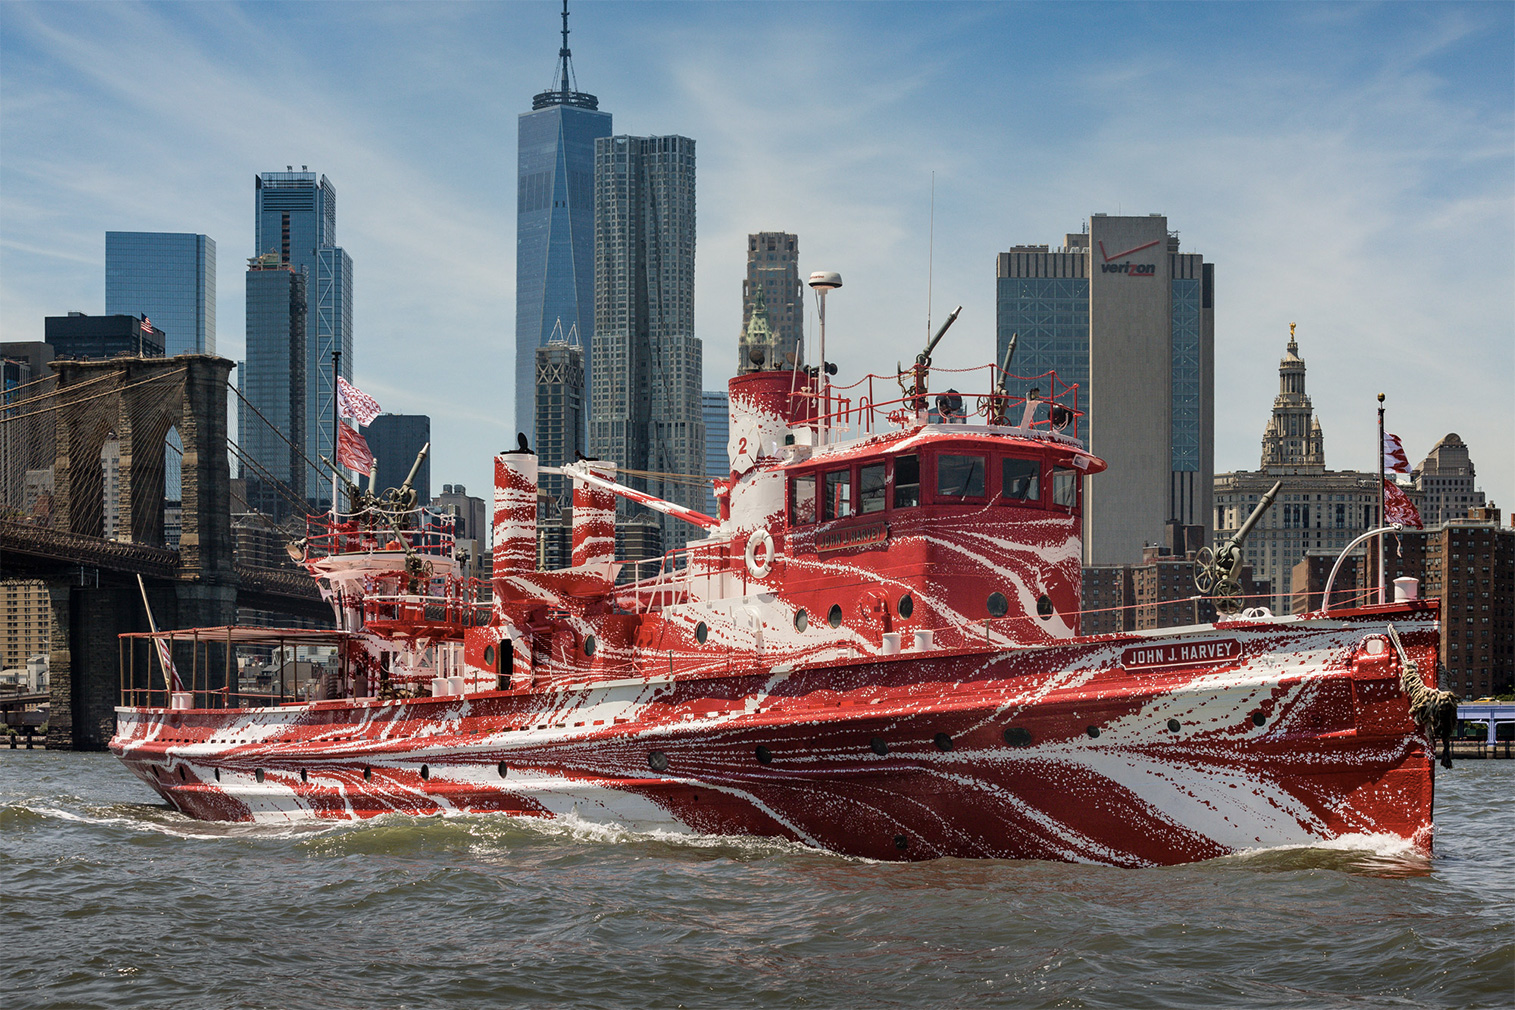 Dazzling fireboat artwork by Tauba Auerbach drops anchor in New York